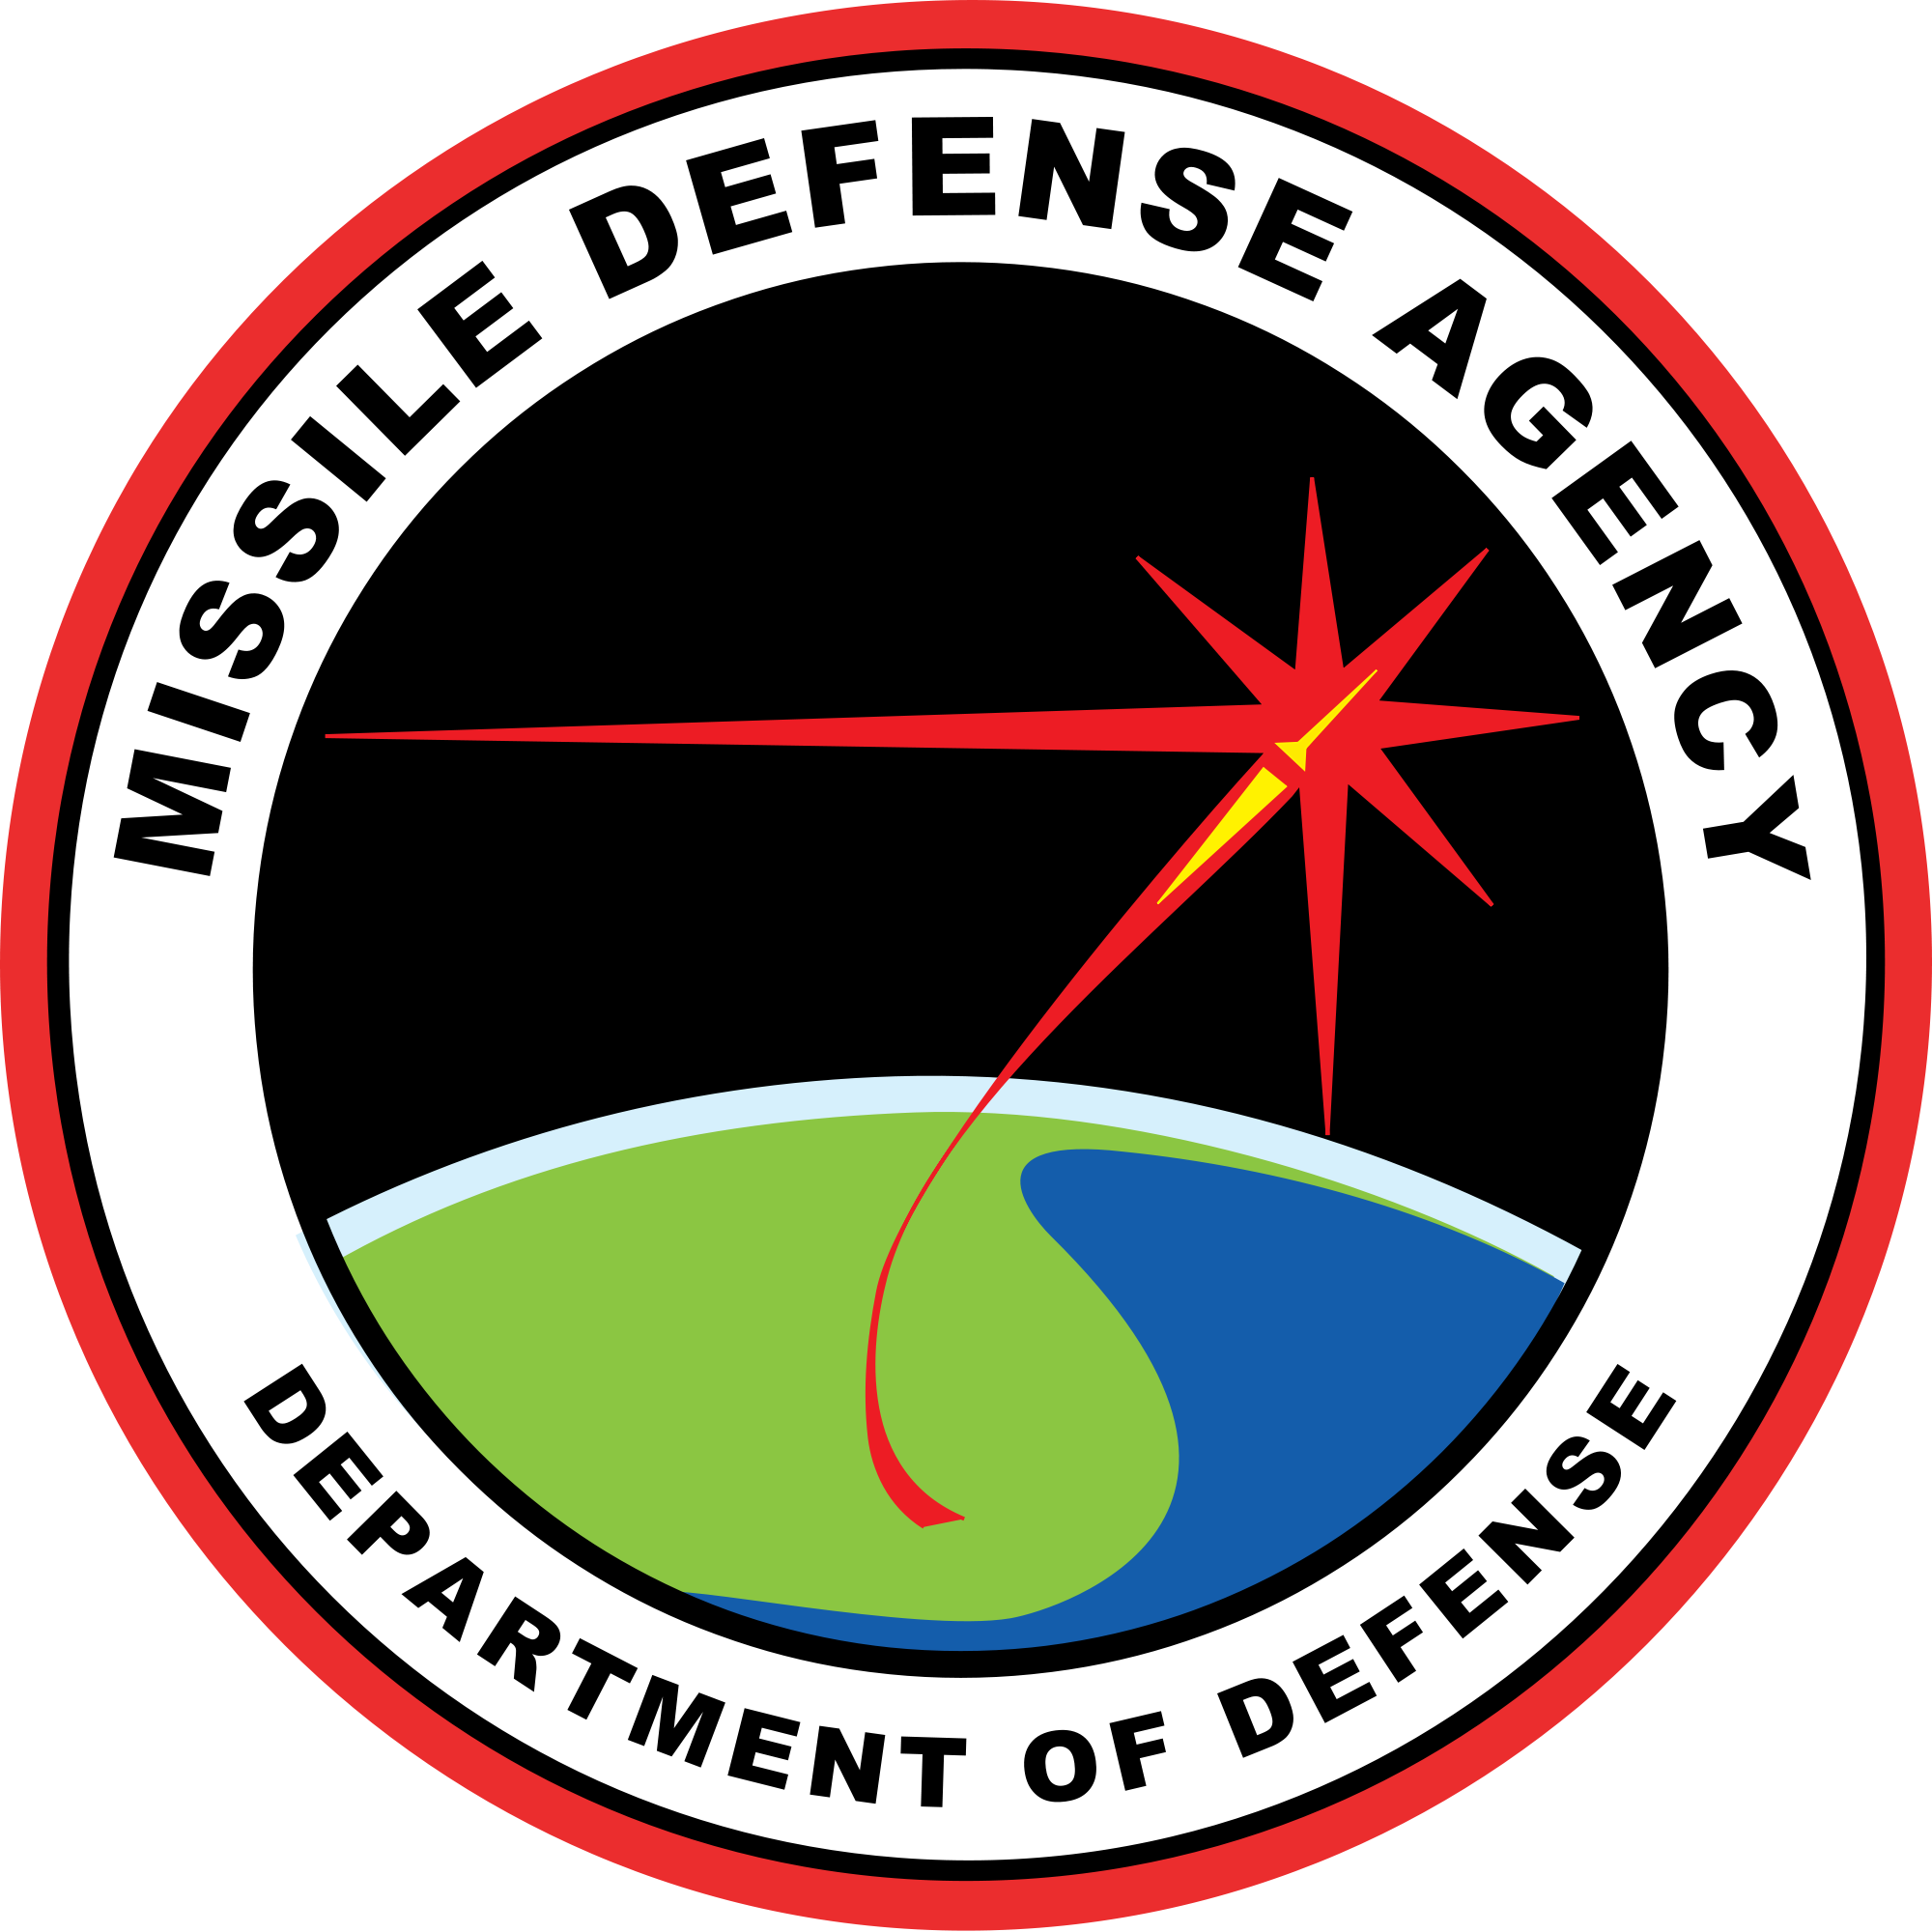 Mobile Defense Agency - Department of Defense